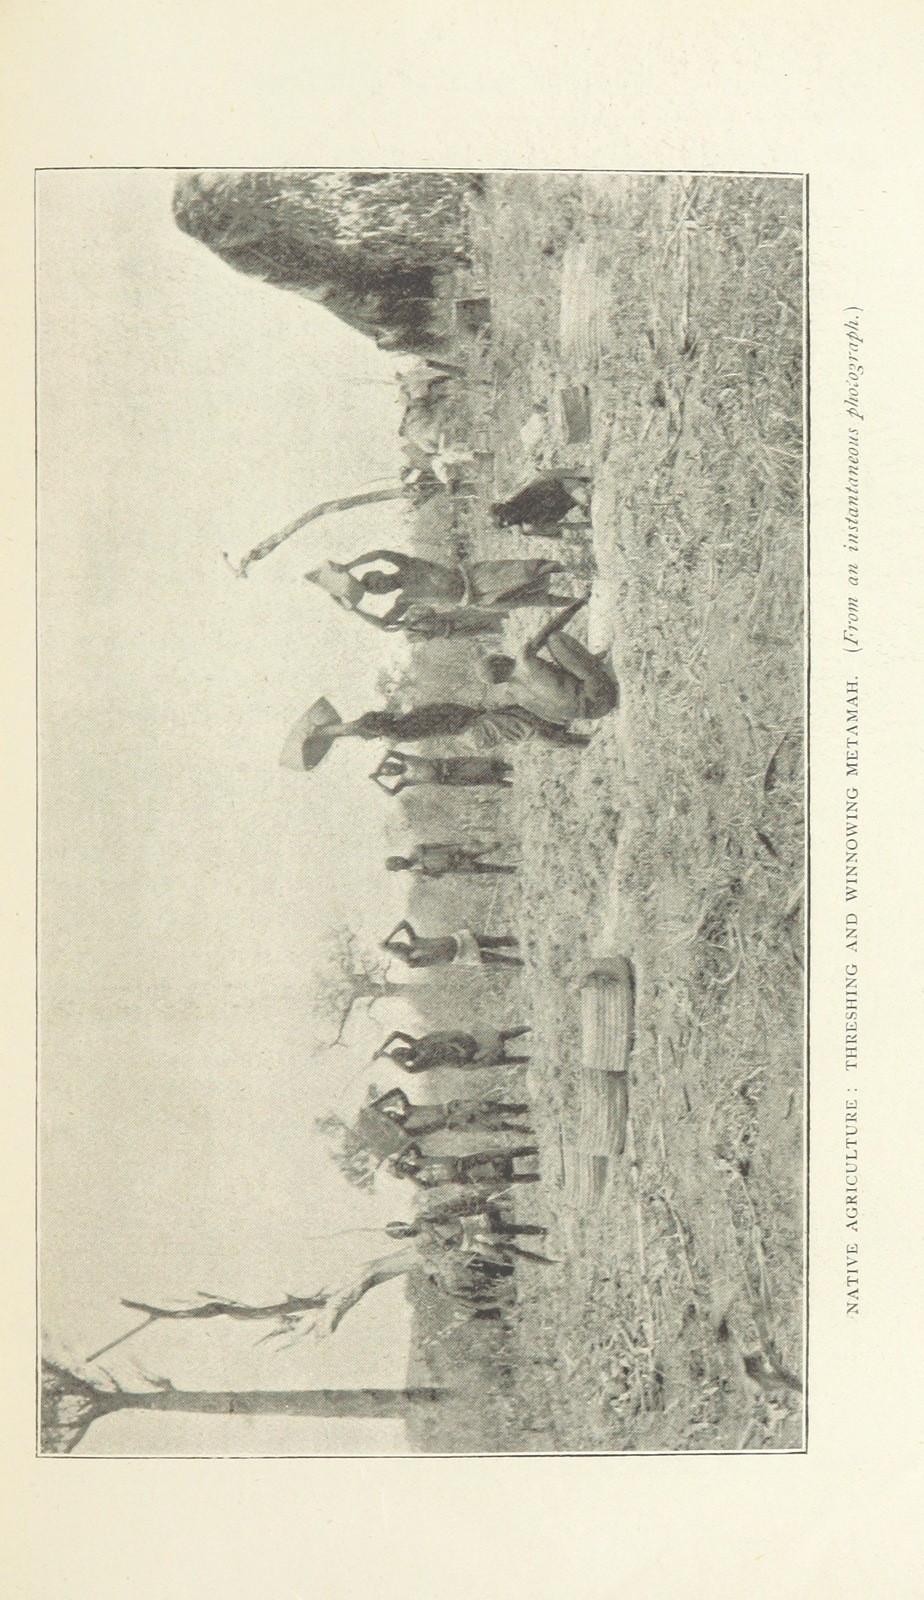 swahili from travels in the coastlands of british east africa and